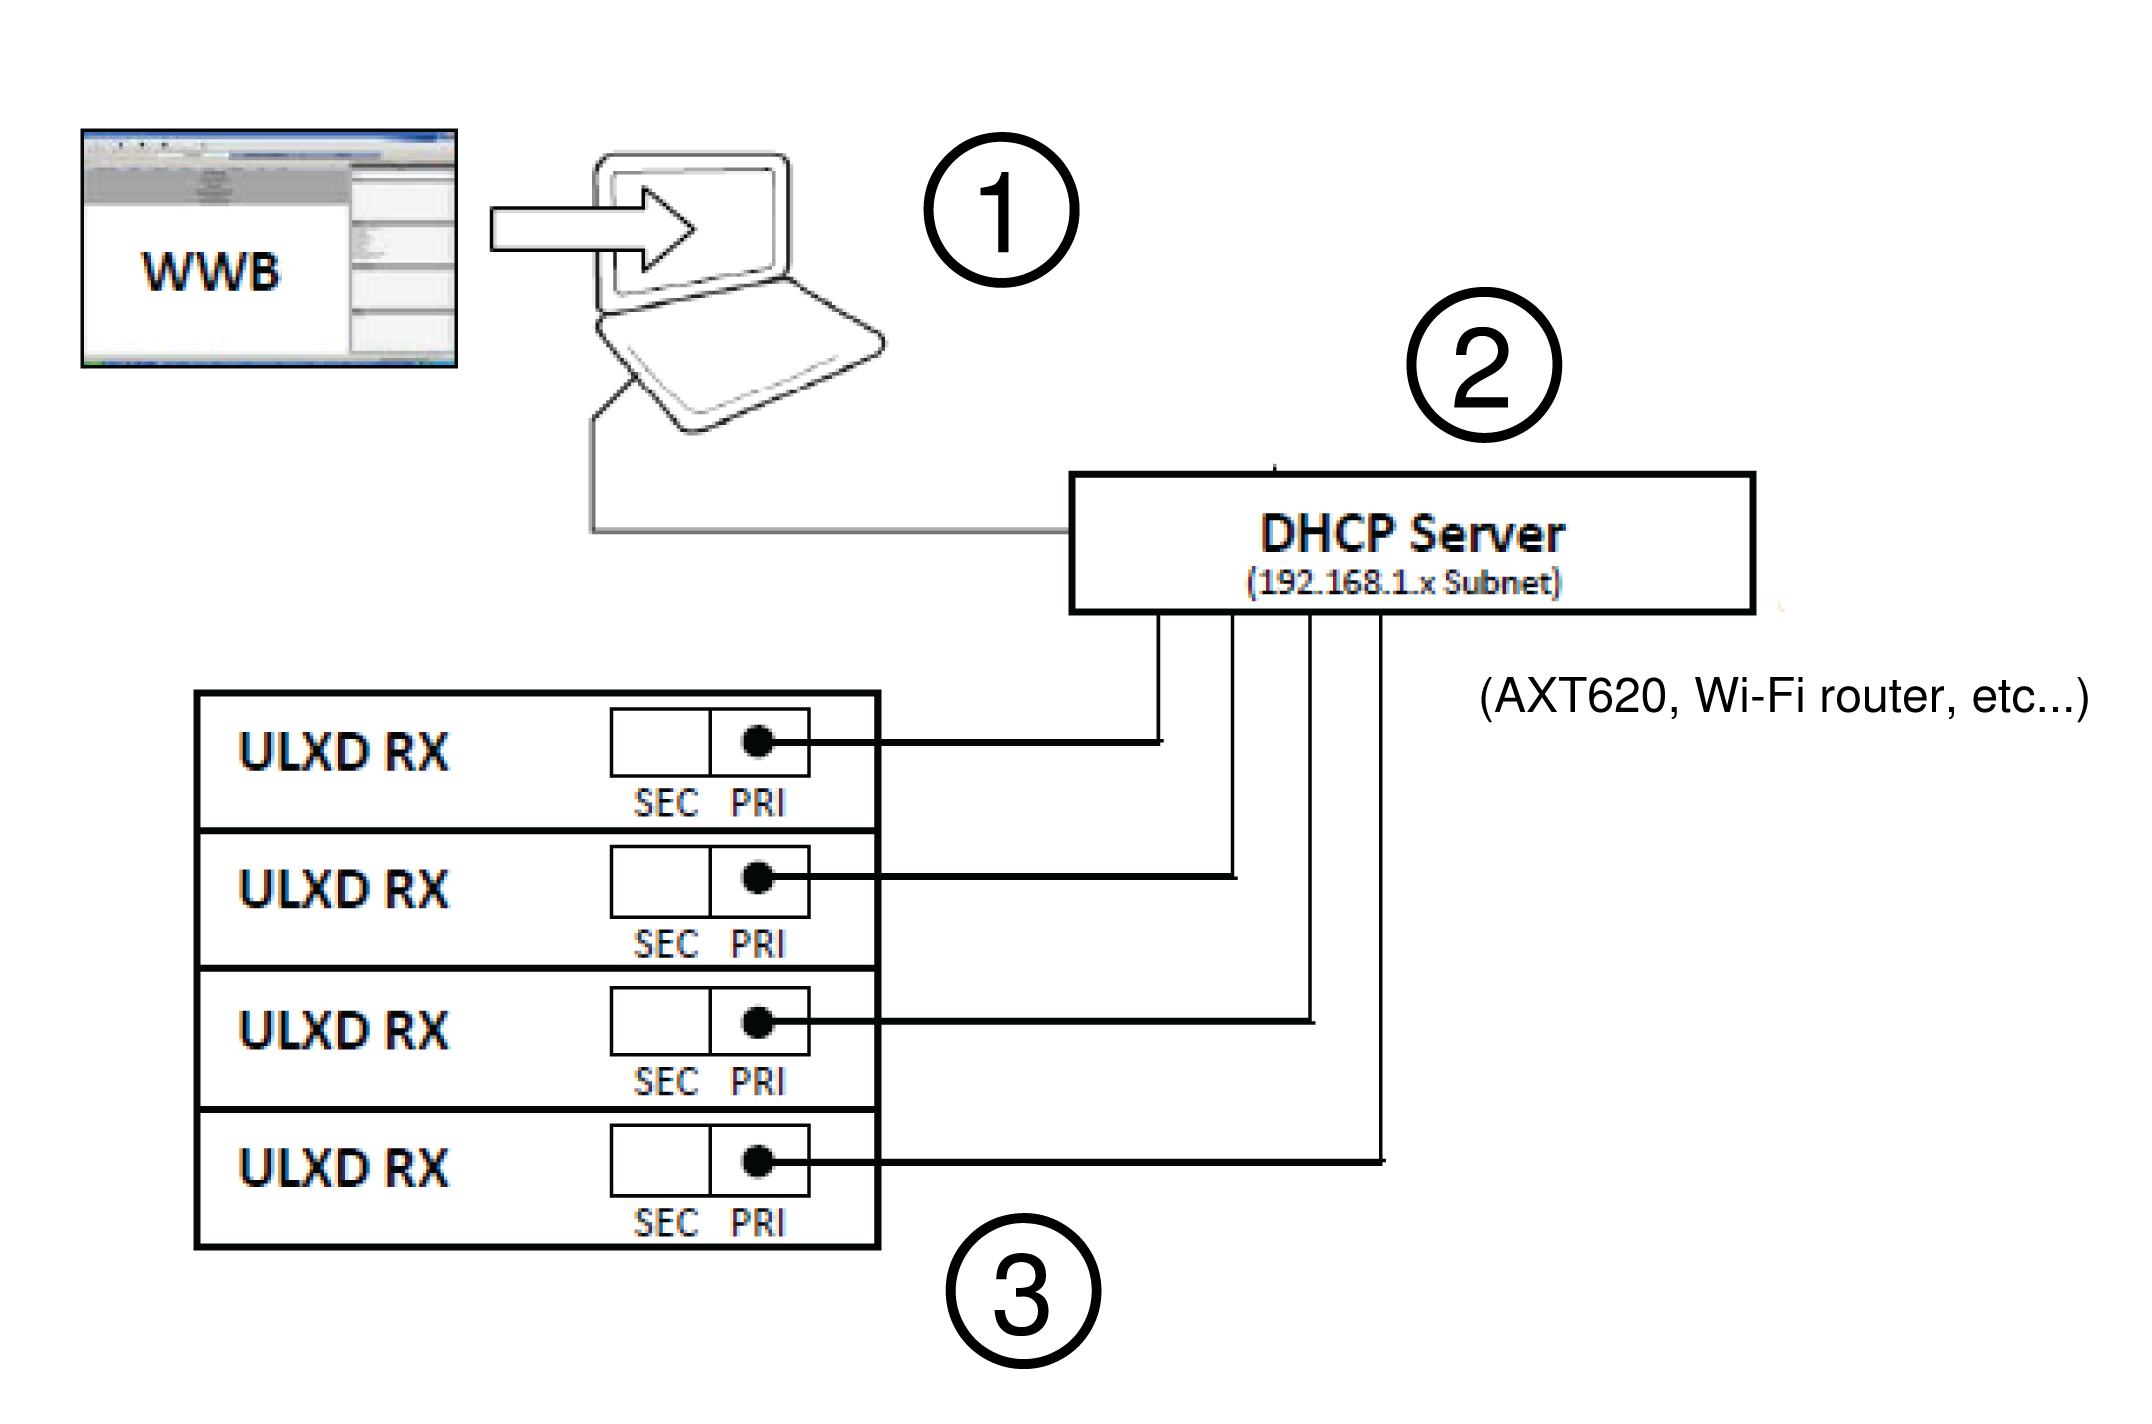 The steps to setting up a Wireless Workbench network illustrated